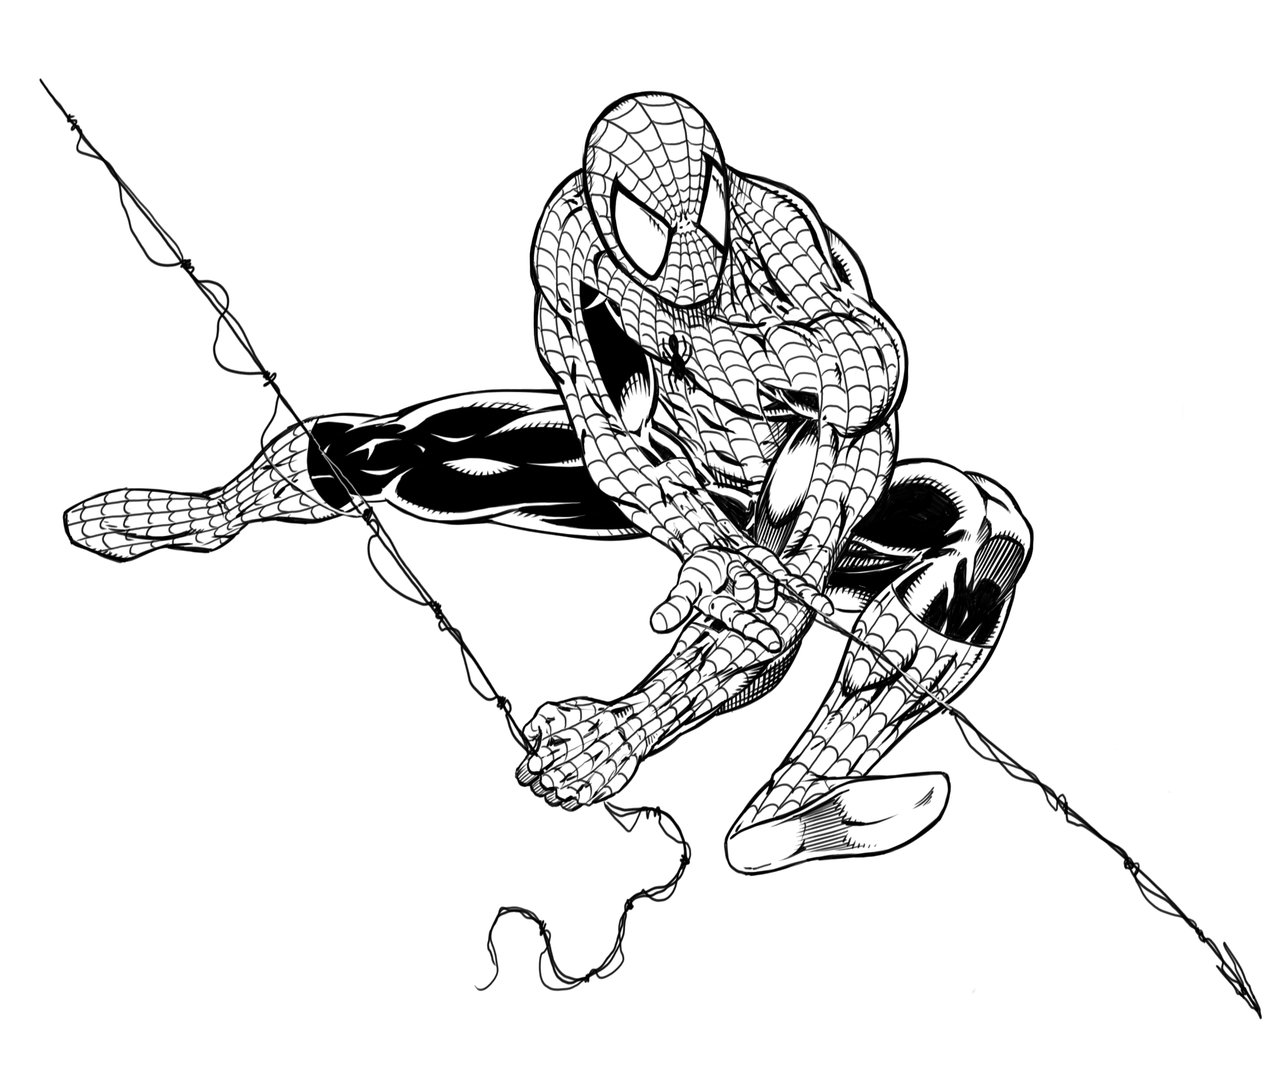 spiderman outline drawing spiderman drawing for kids at paintingvalleycom explore spiderman drawing outline